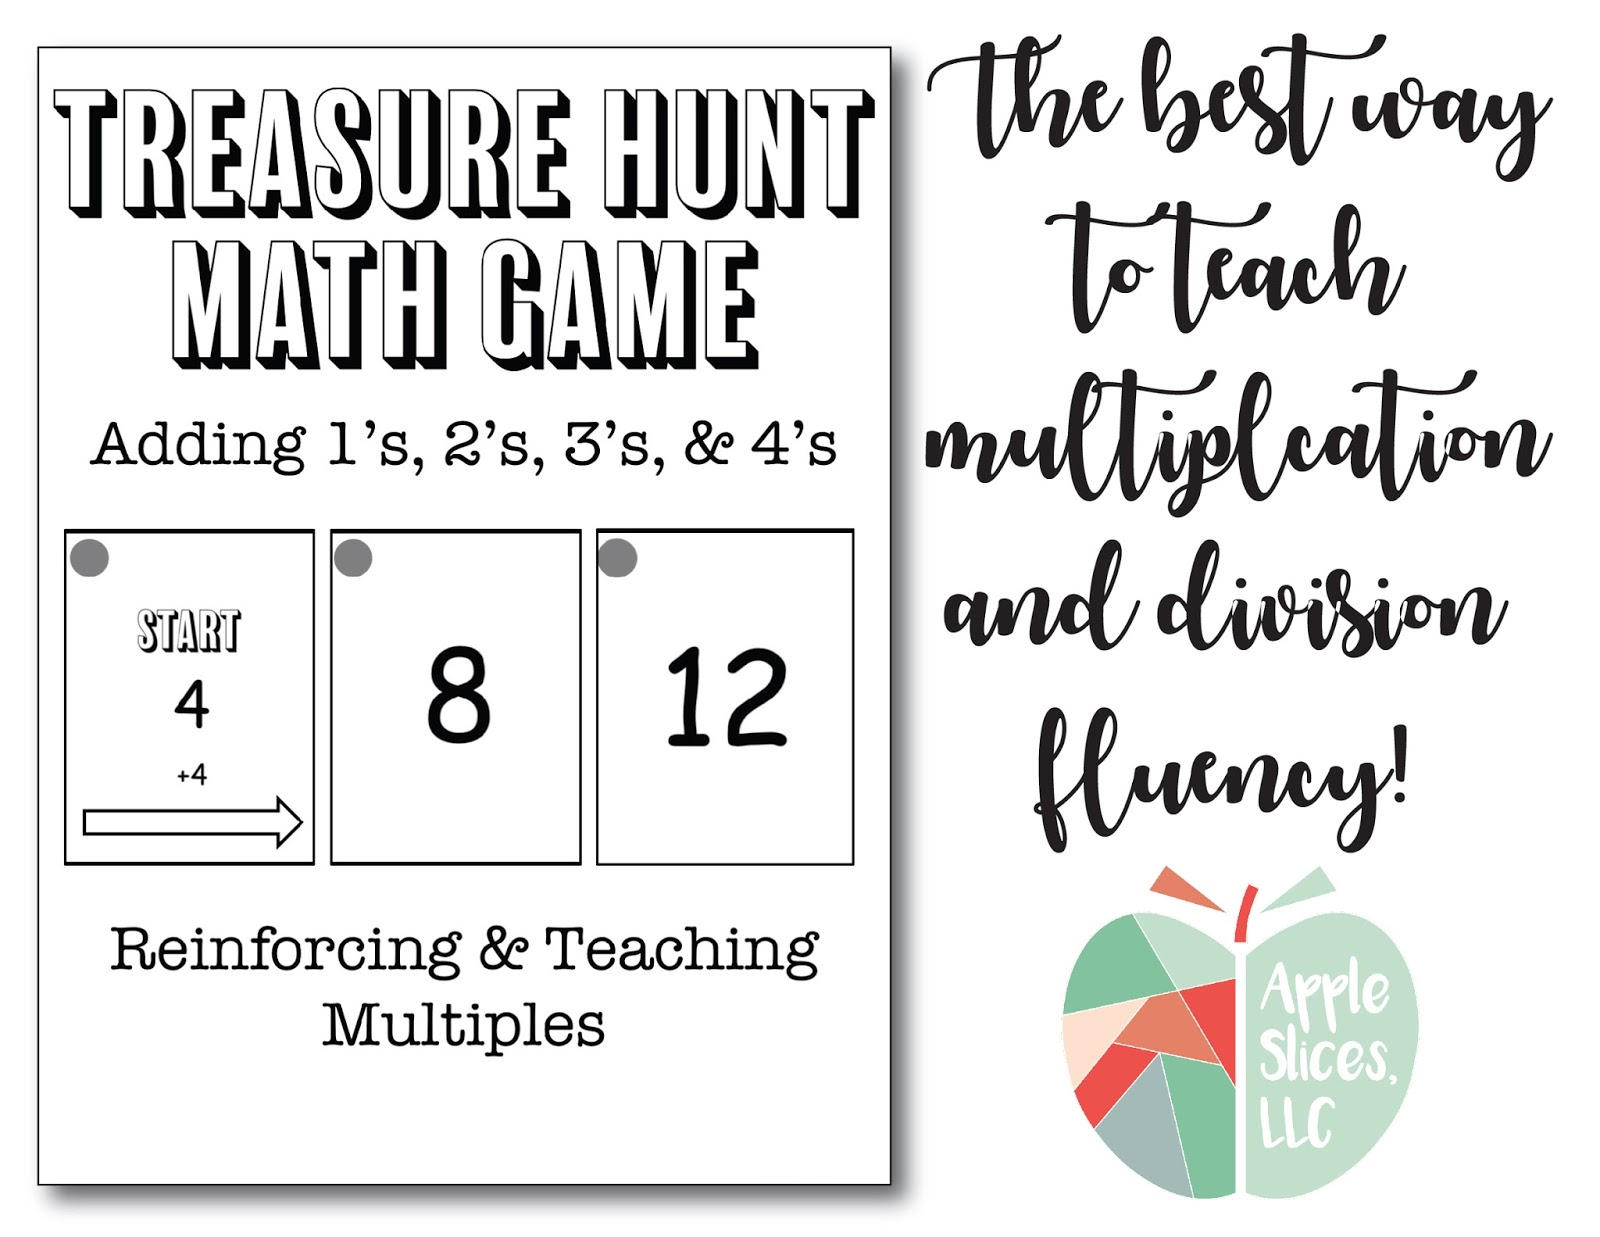 AppleSlices: Treasure Hunt Math Game